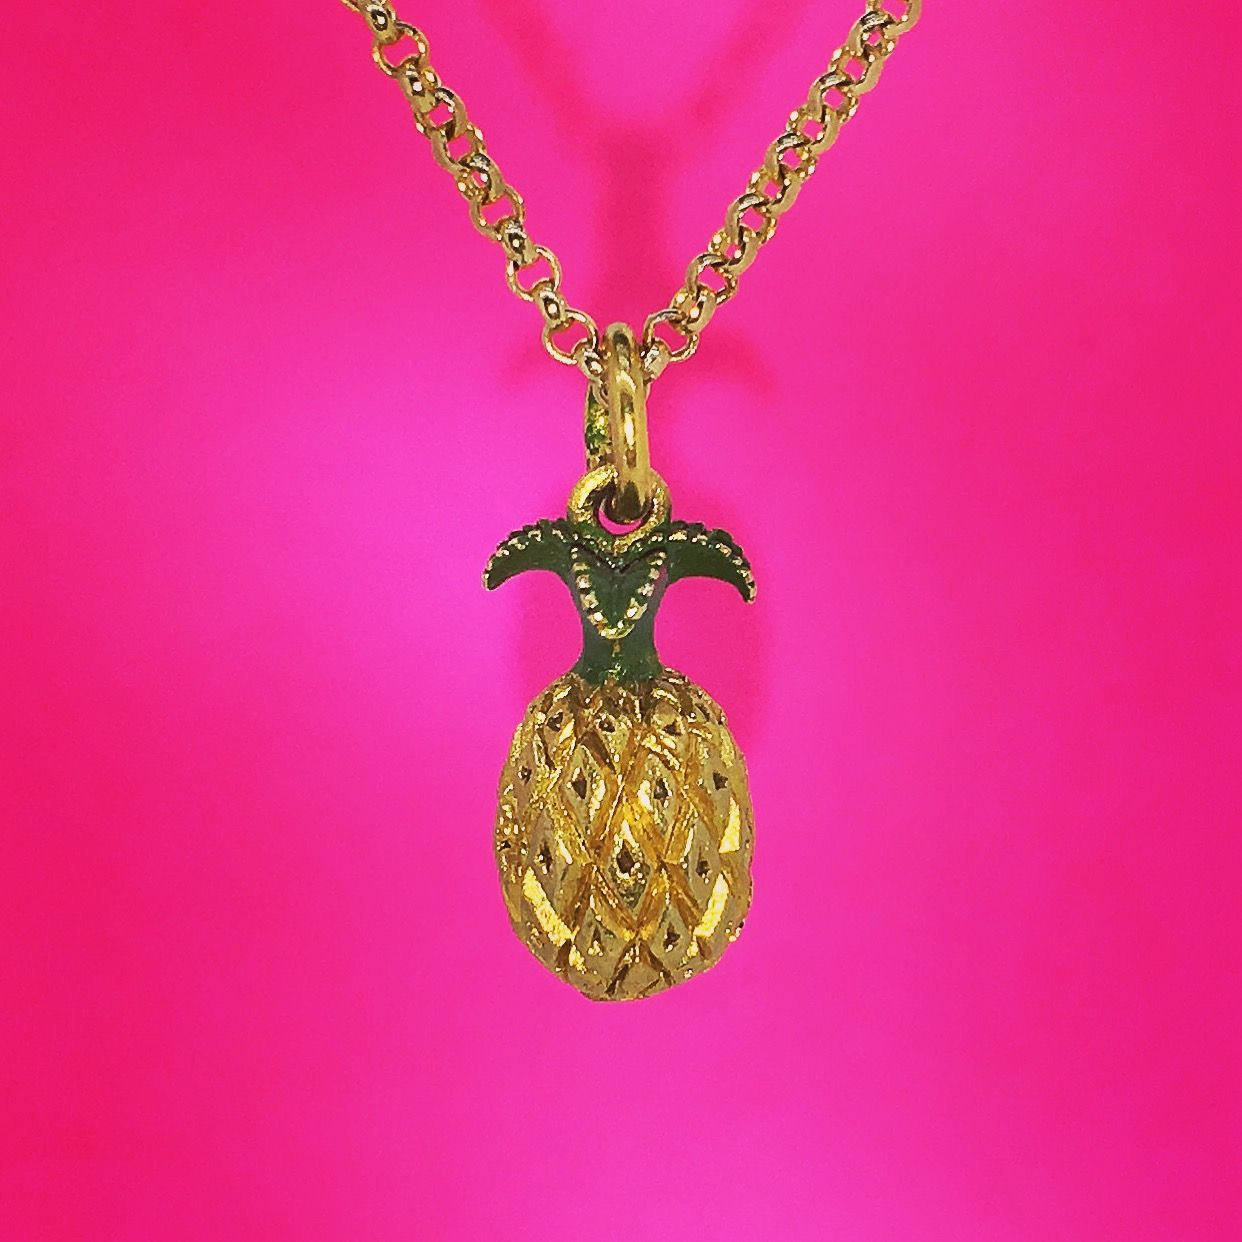 It's Friday!! Here is a solid 9ct gold pineapple 🍍 pendant for your pleasure. Have a good weekend. For even the most unusual gift requests just contact us.  www.robinsmoore.co.uk